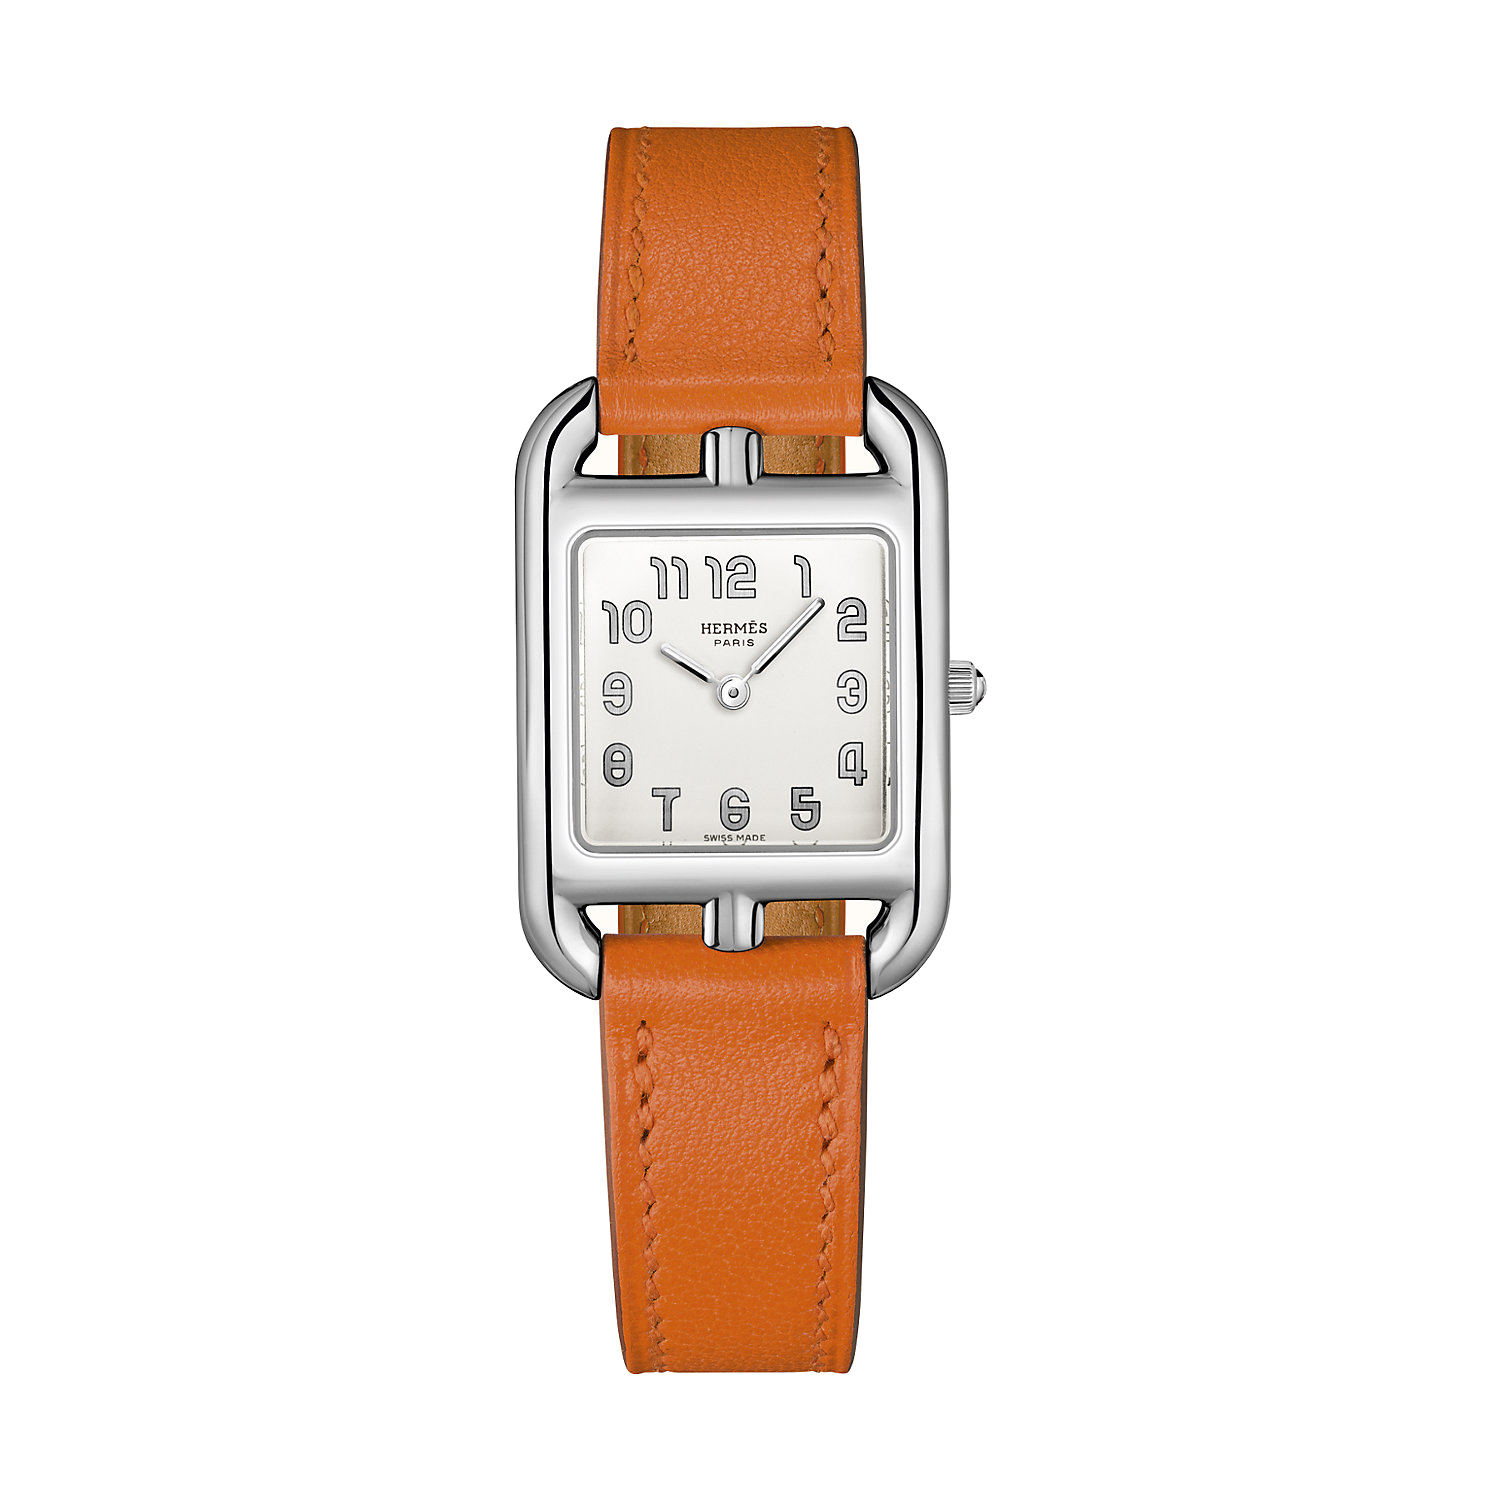 Hermès-cape-cod-23-x-23mm-Hall-of-Time-040242WW00